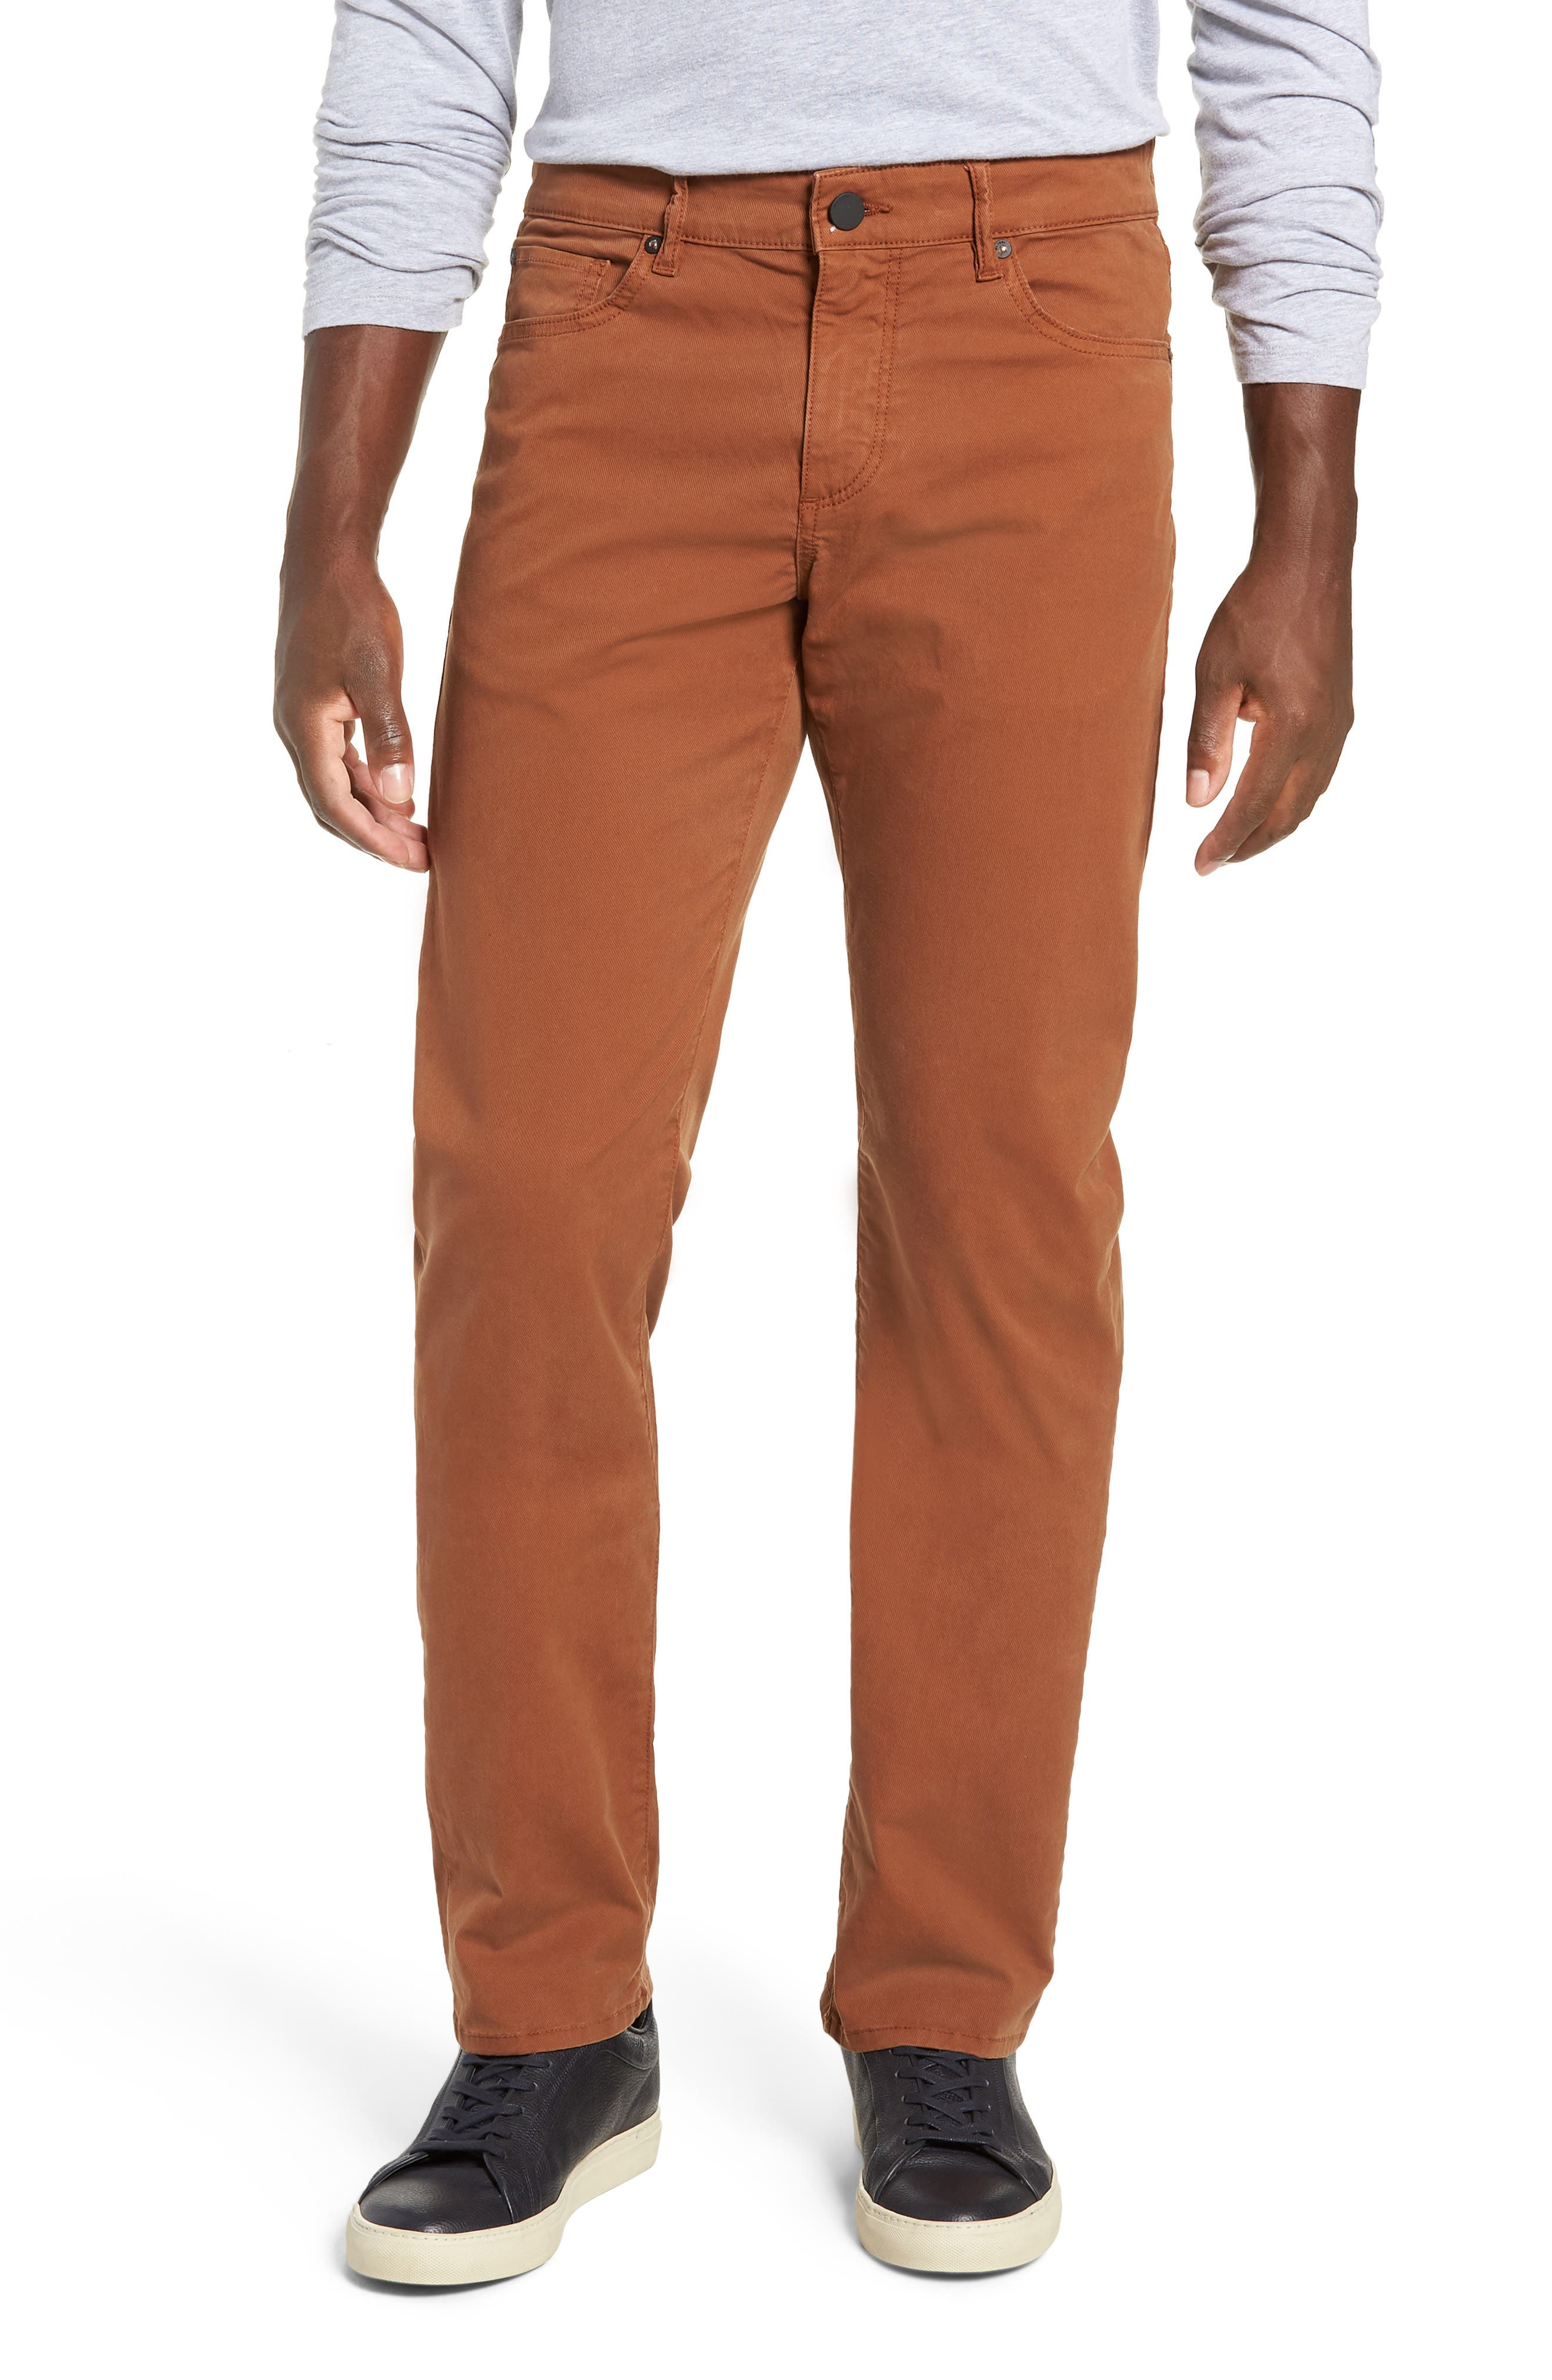 Russell Slim Straight Leg Jeans,                         Main,                         color, TERRACOTTA